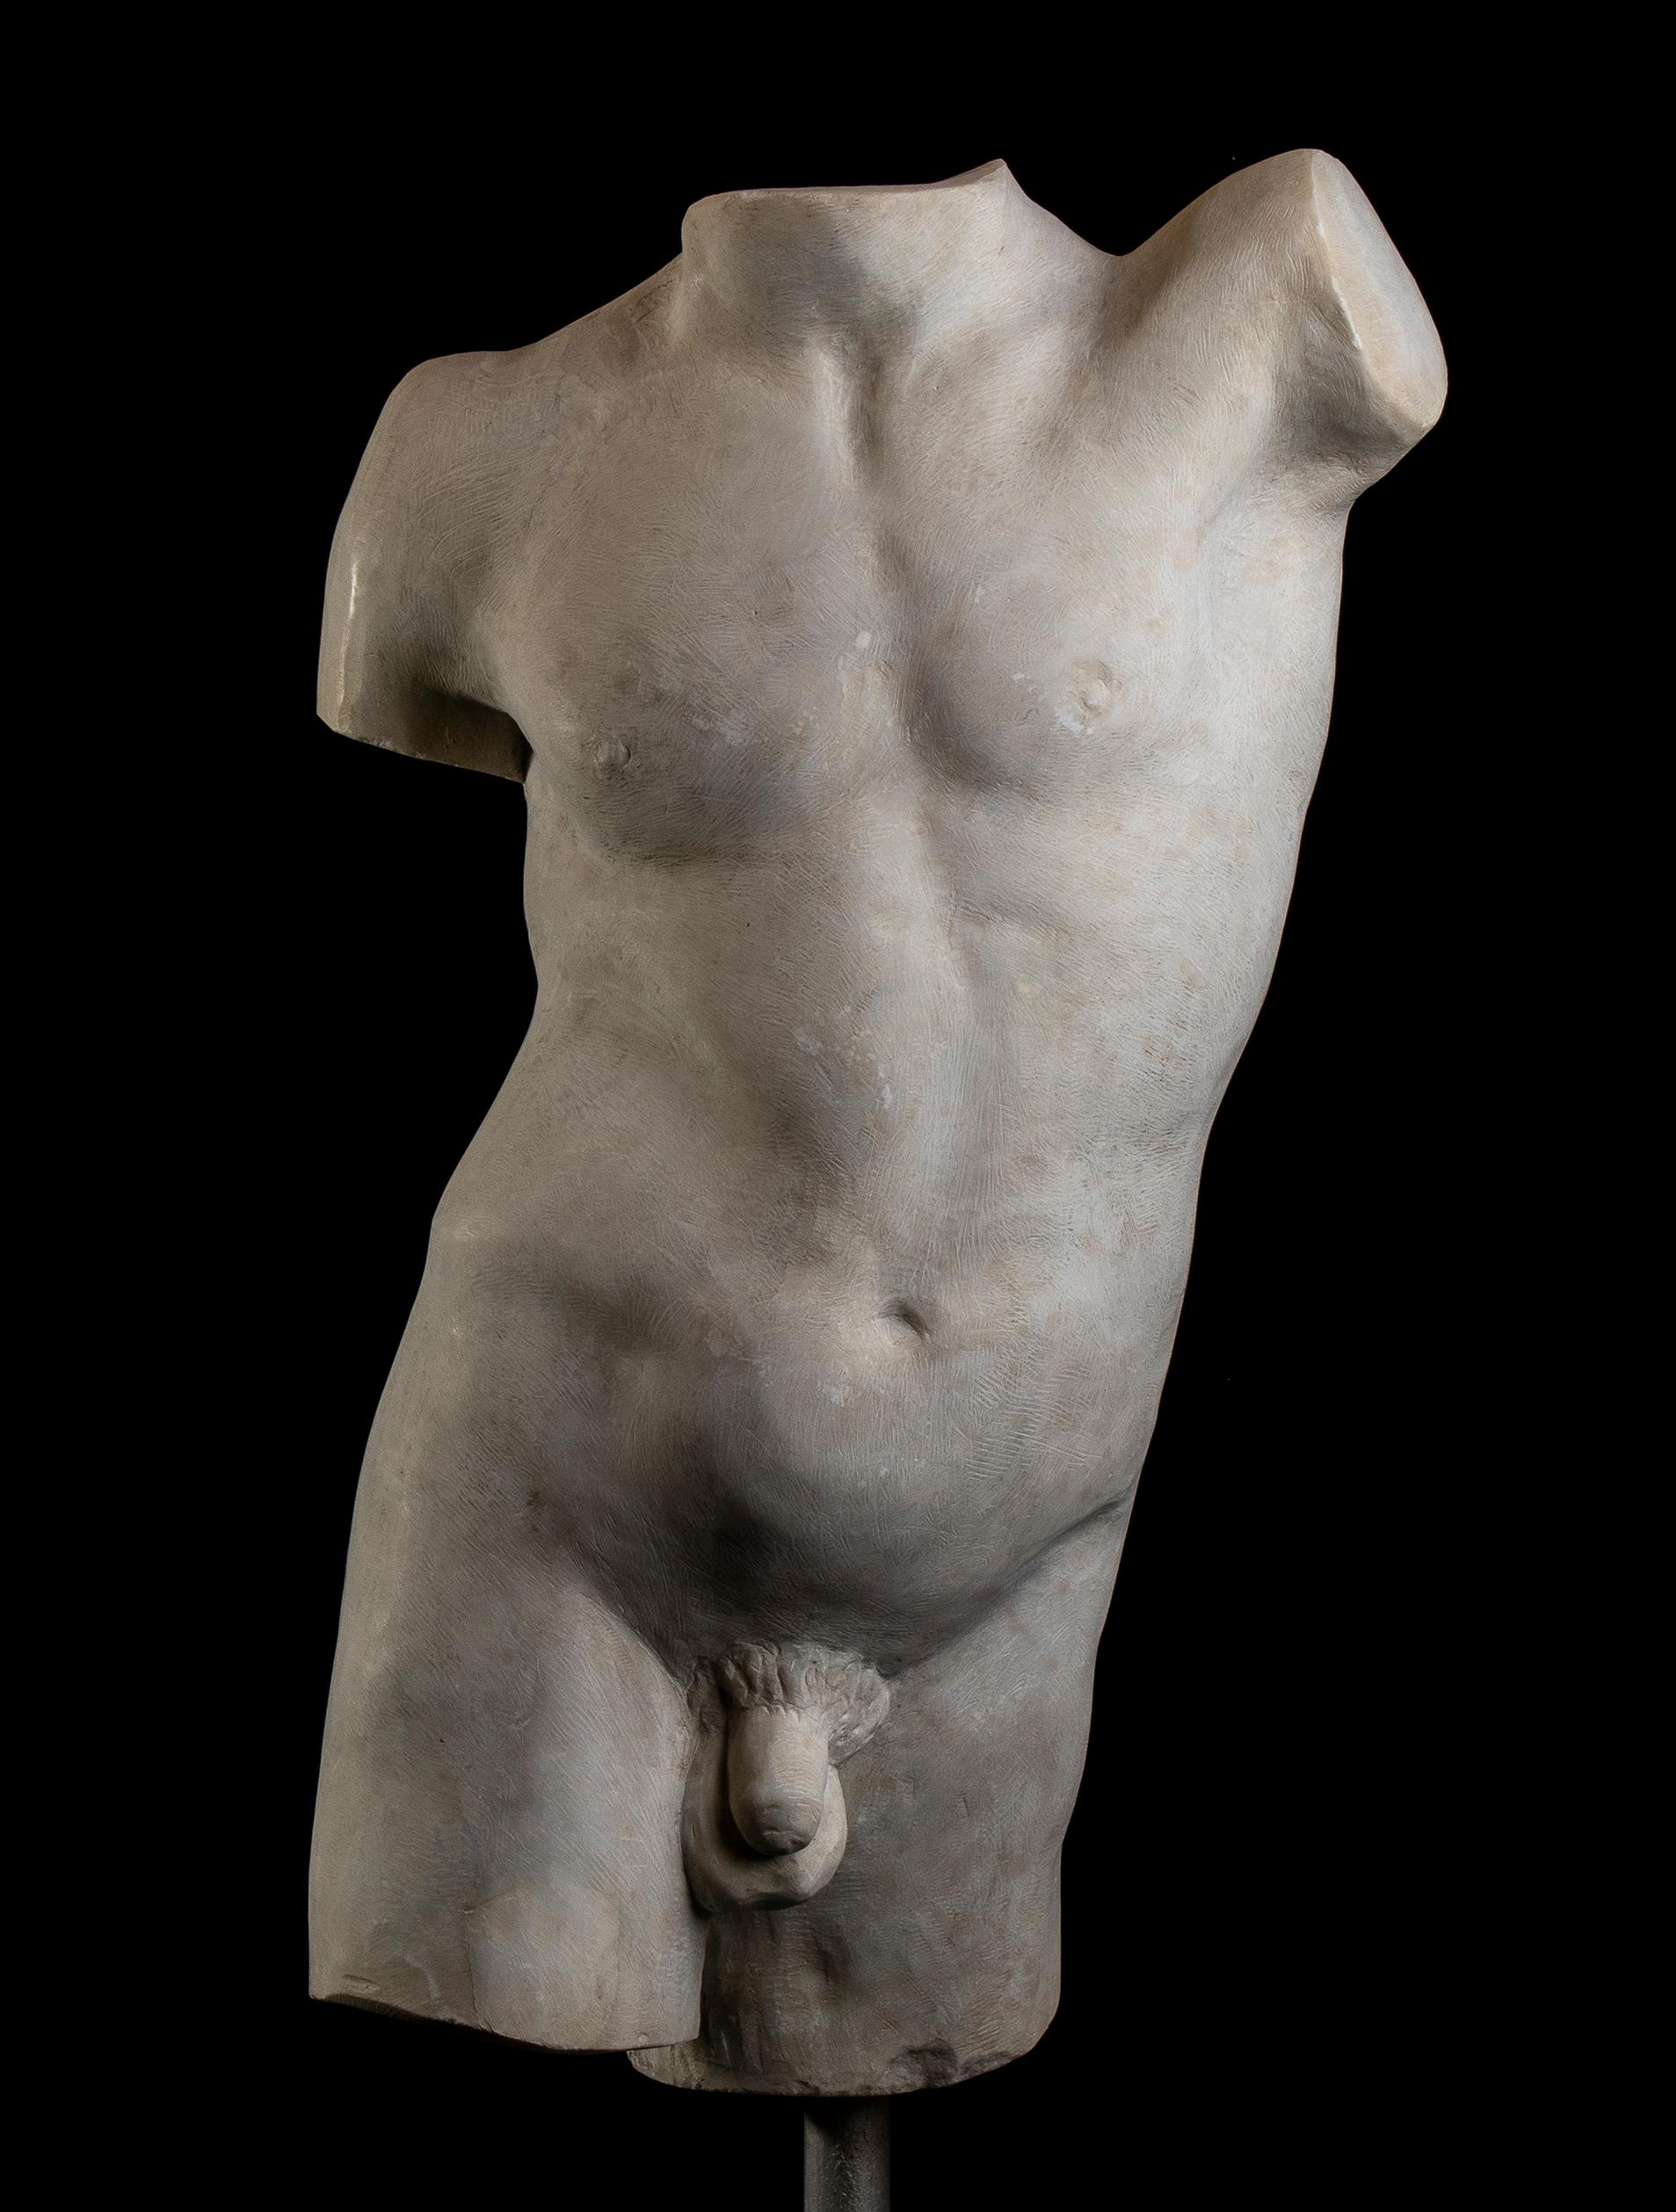 Torso Marble Sculpture of a Man or Athlete Roman Classical Style Italian 20th